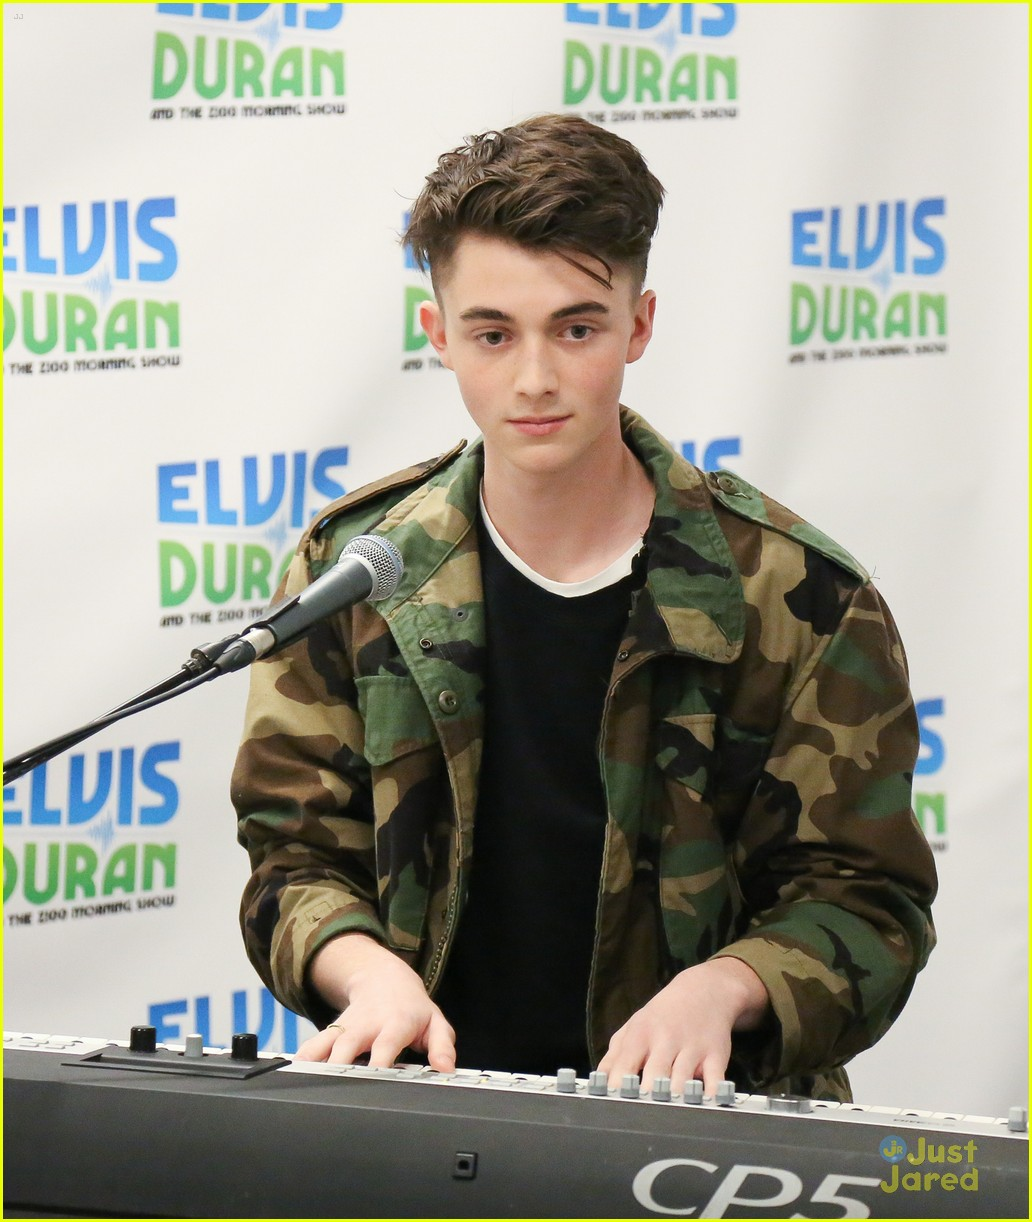 greyson chance elvis duran show oceans collaboration 11